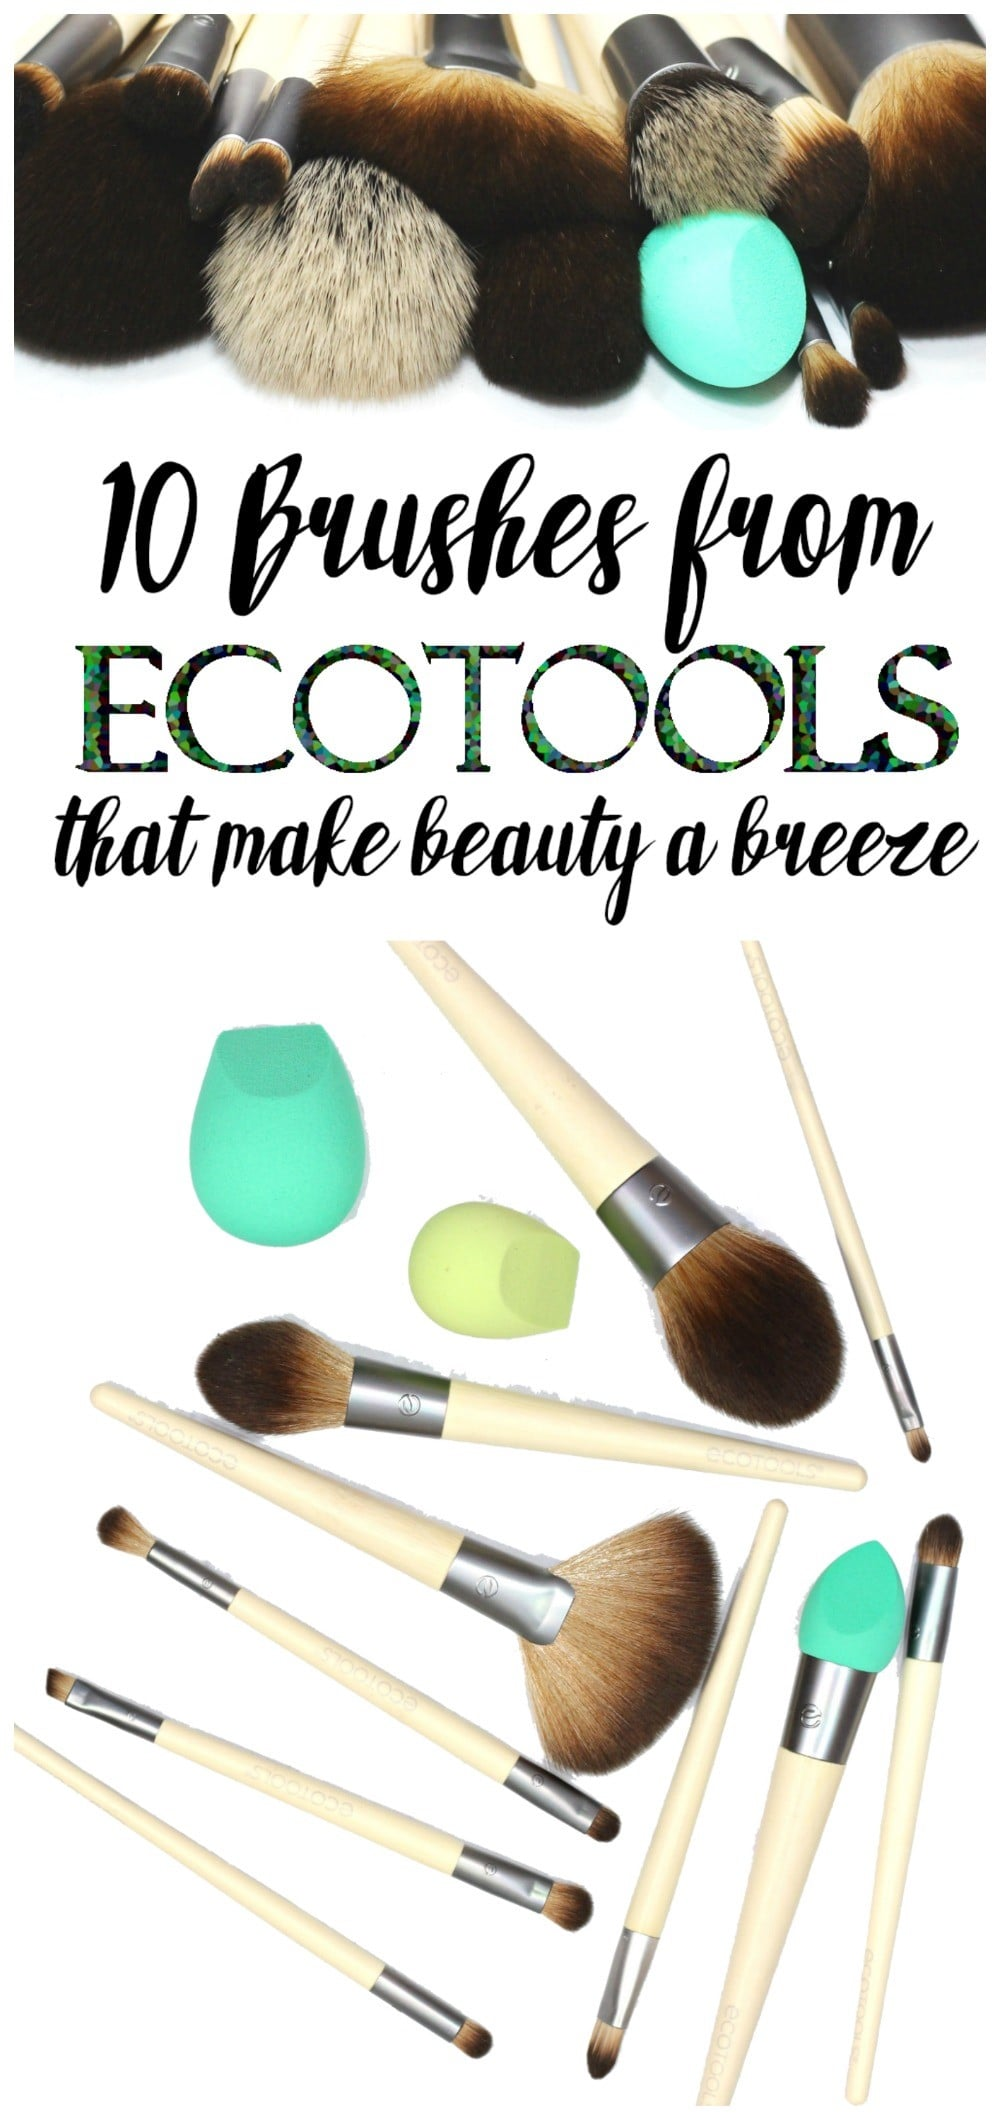 10 EcoTools Brushes That Make Beauty a Breeze